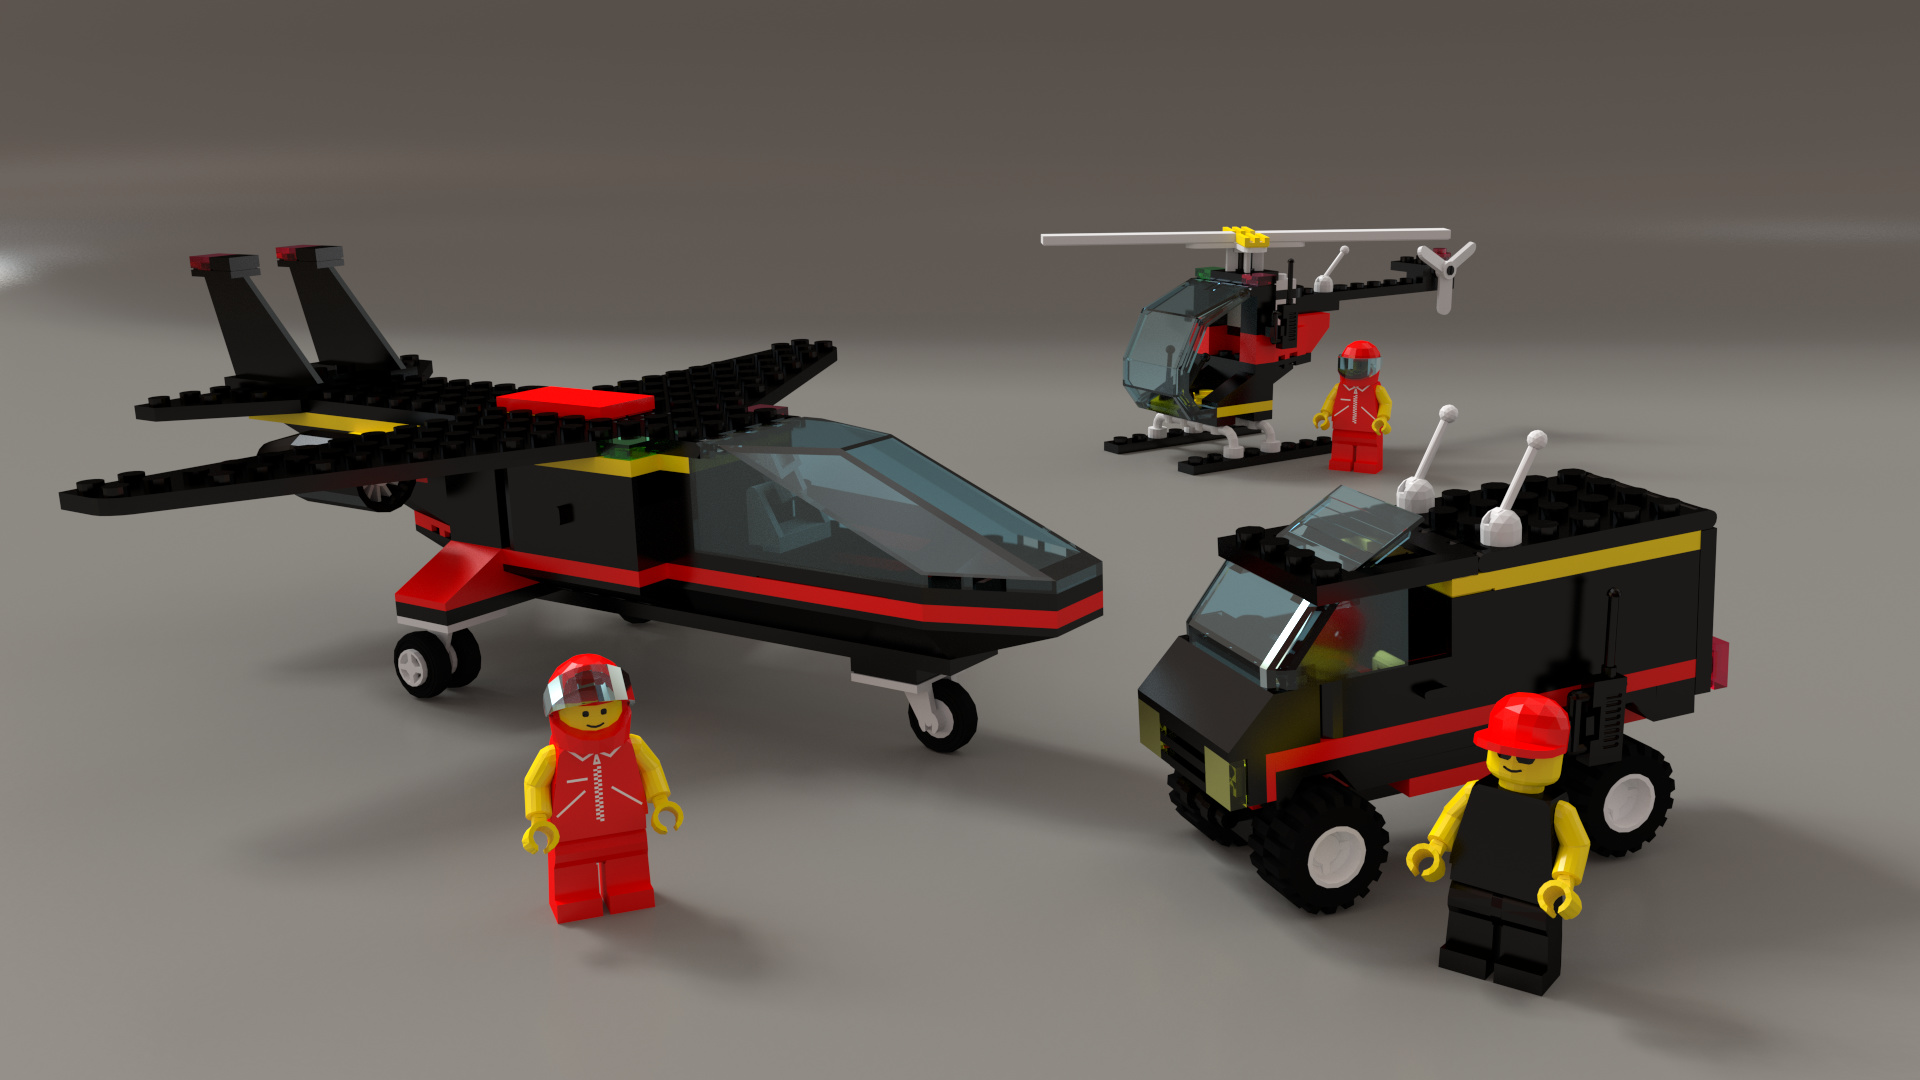 1687 Midnight Transport - Finished Projects - Blender